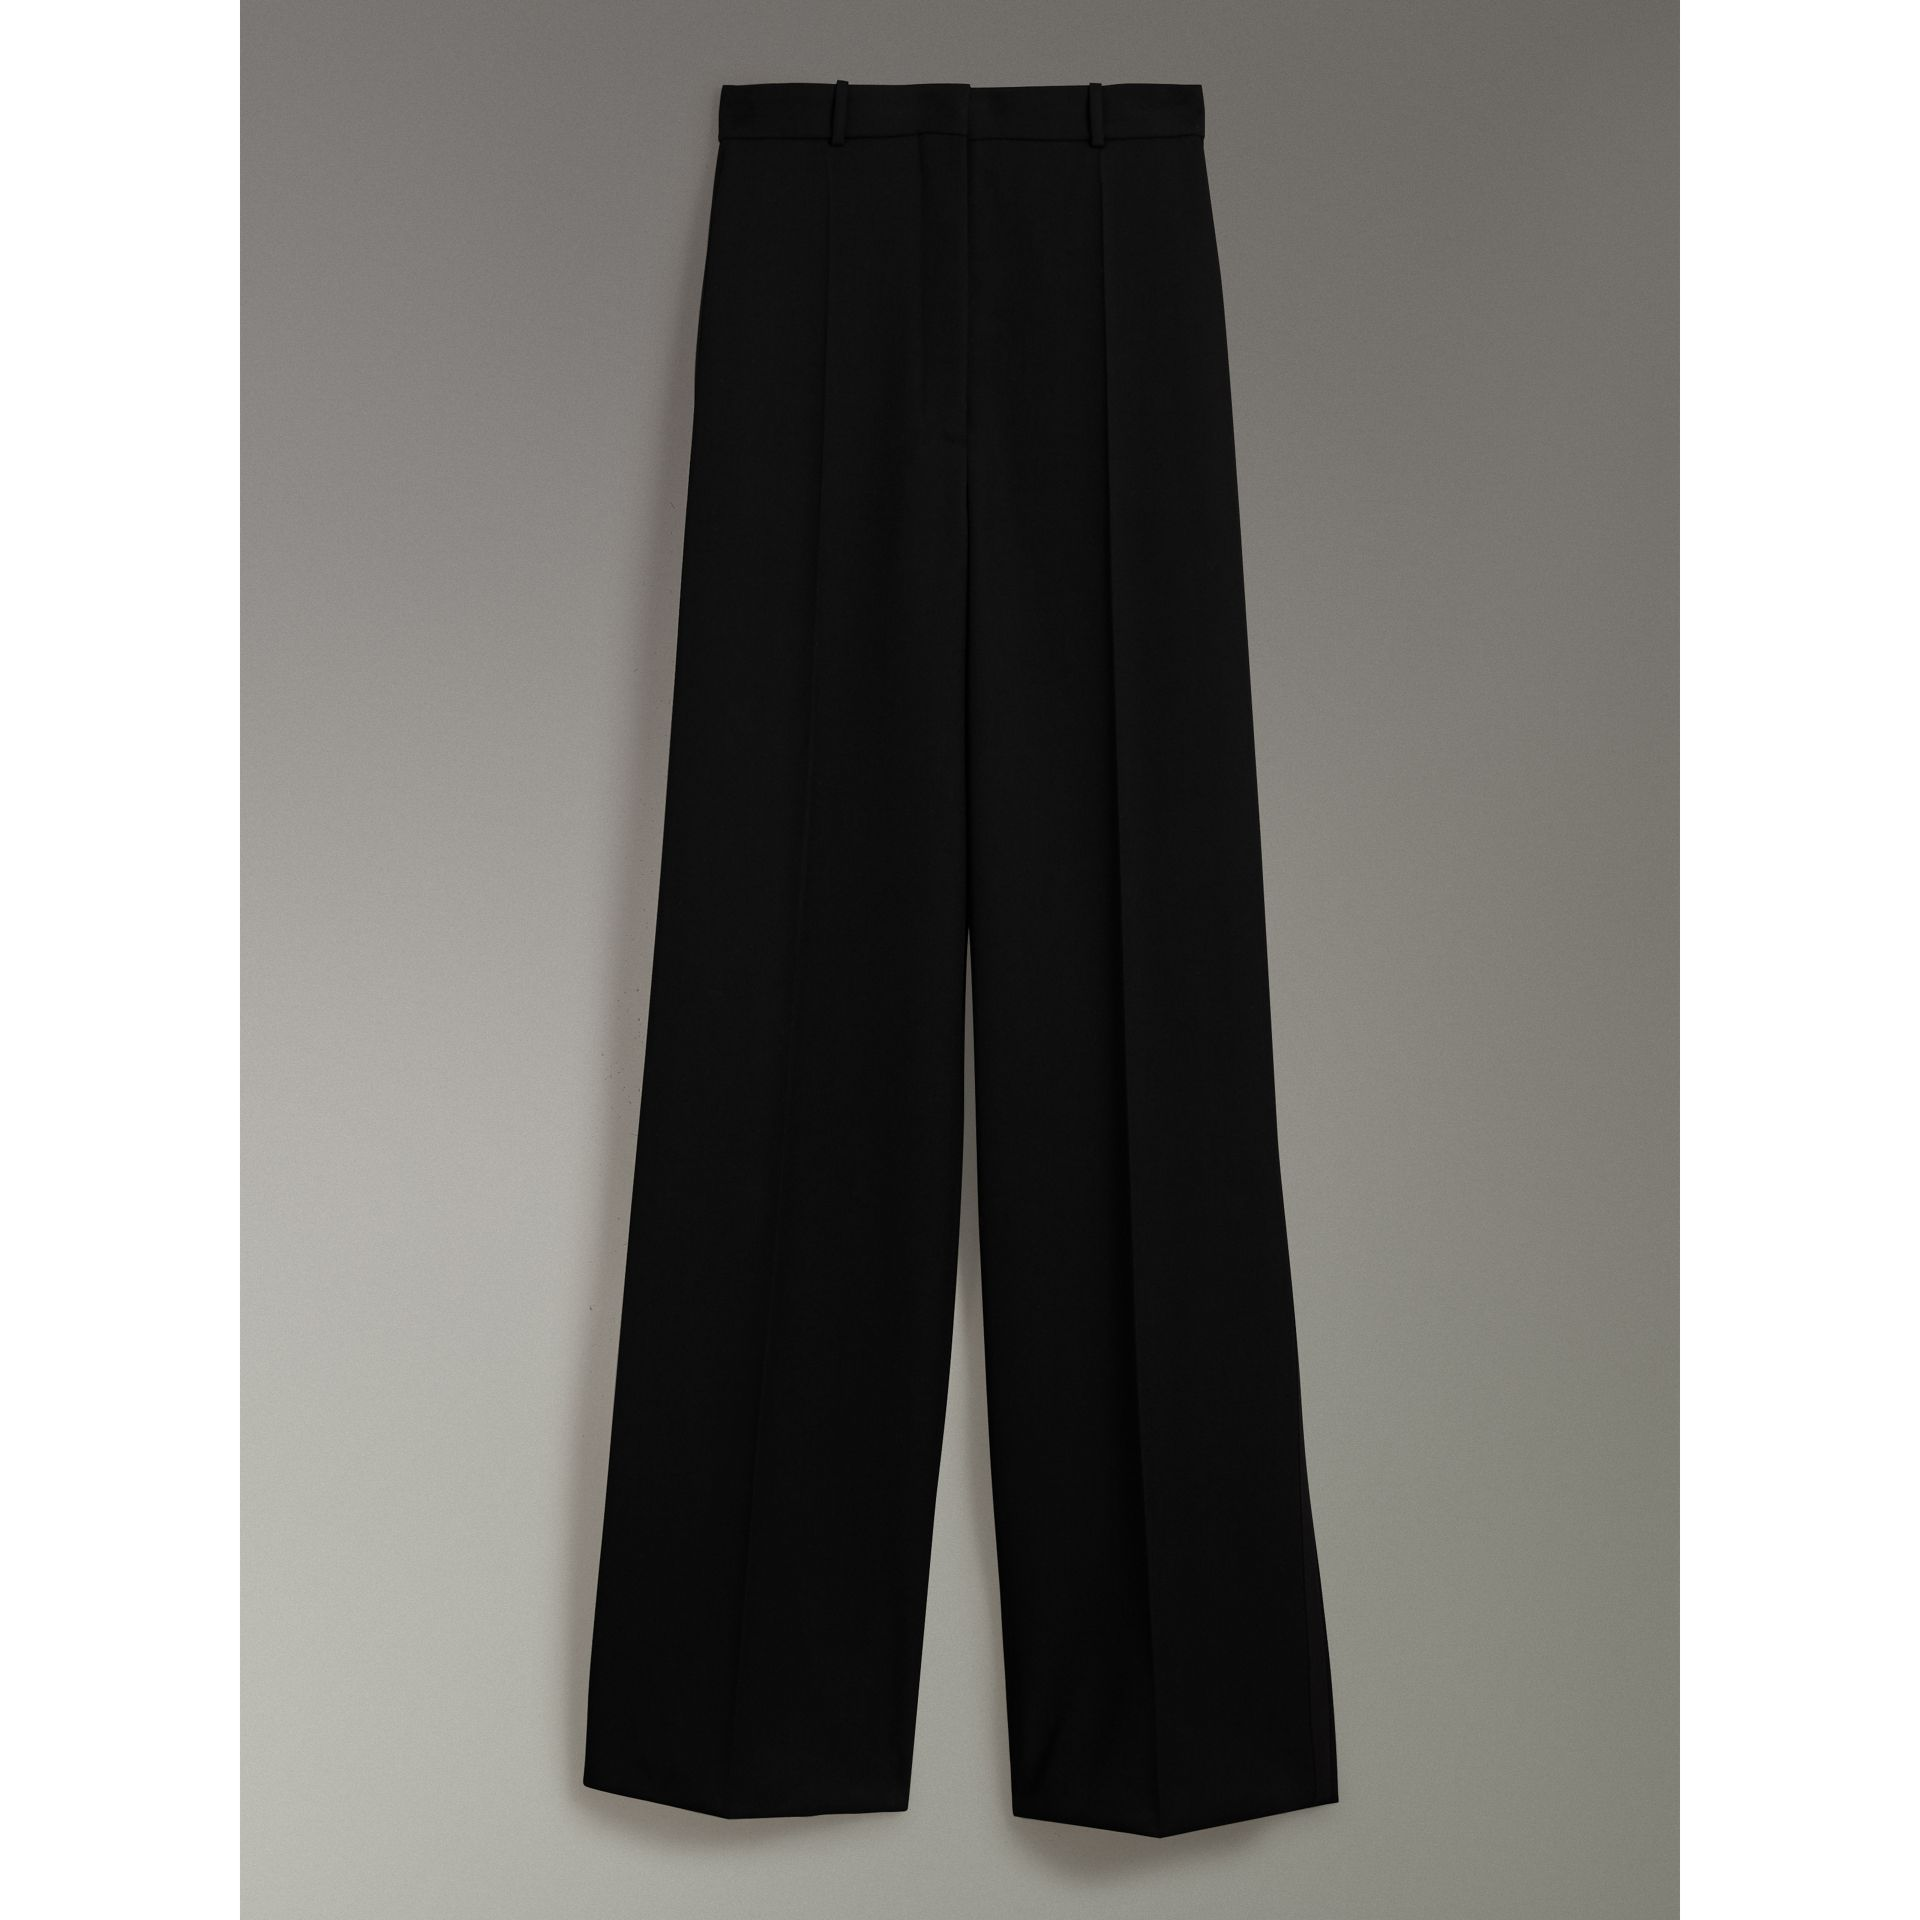 Wool High-waisted Trousers in Black - Women | Burberry United States - gallery image 3